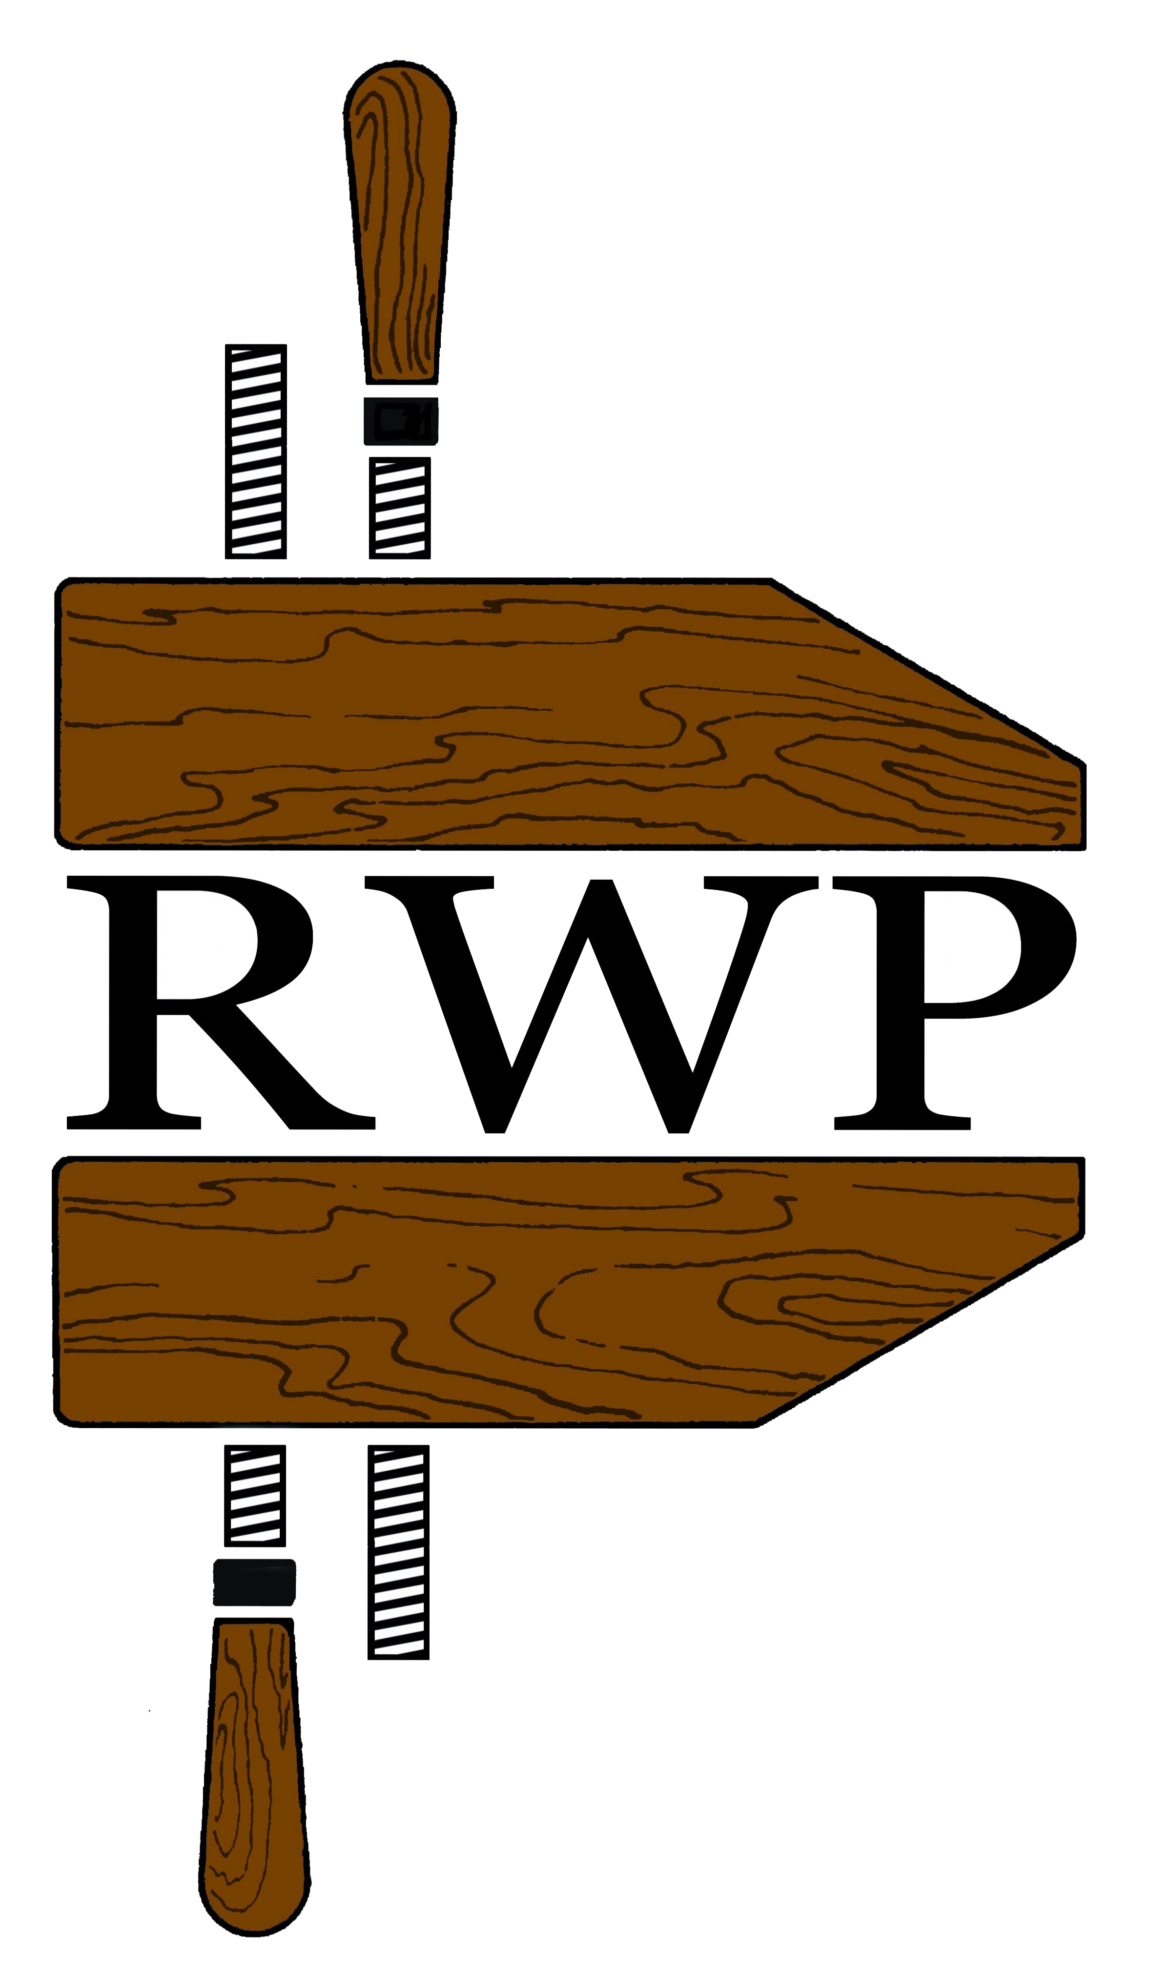 RWP-Catalog-003-Original-transparent.png